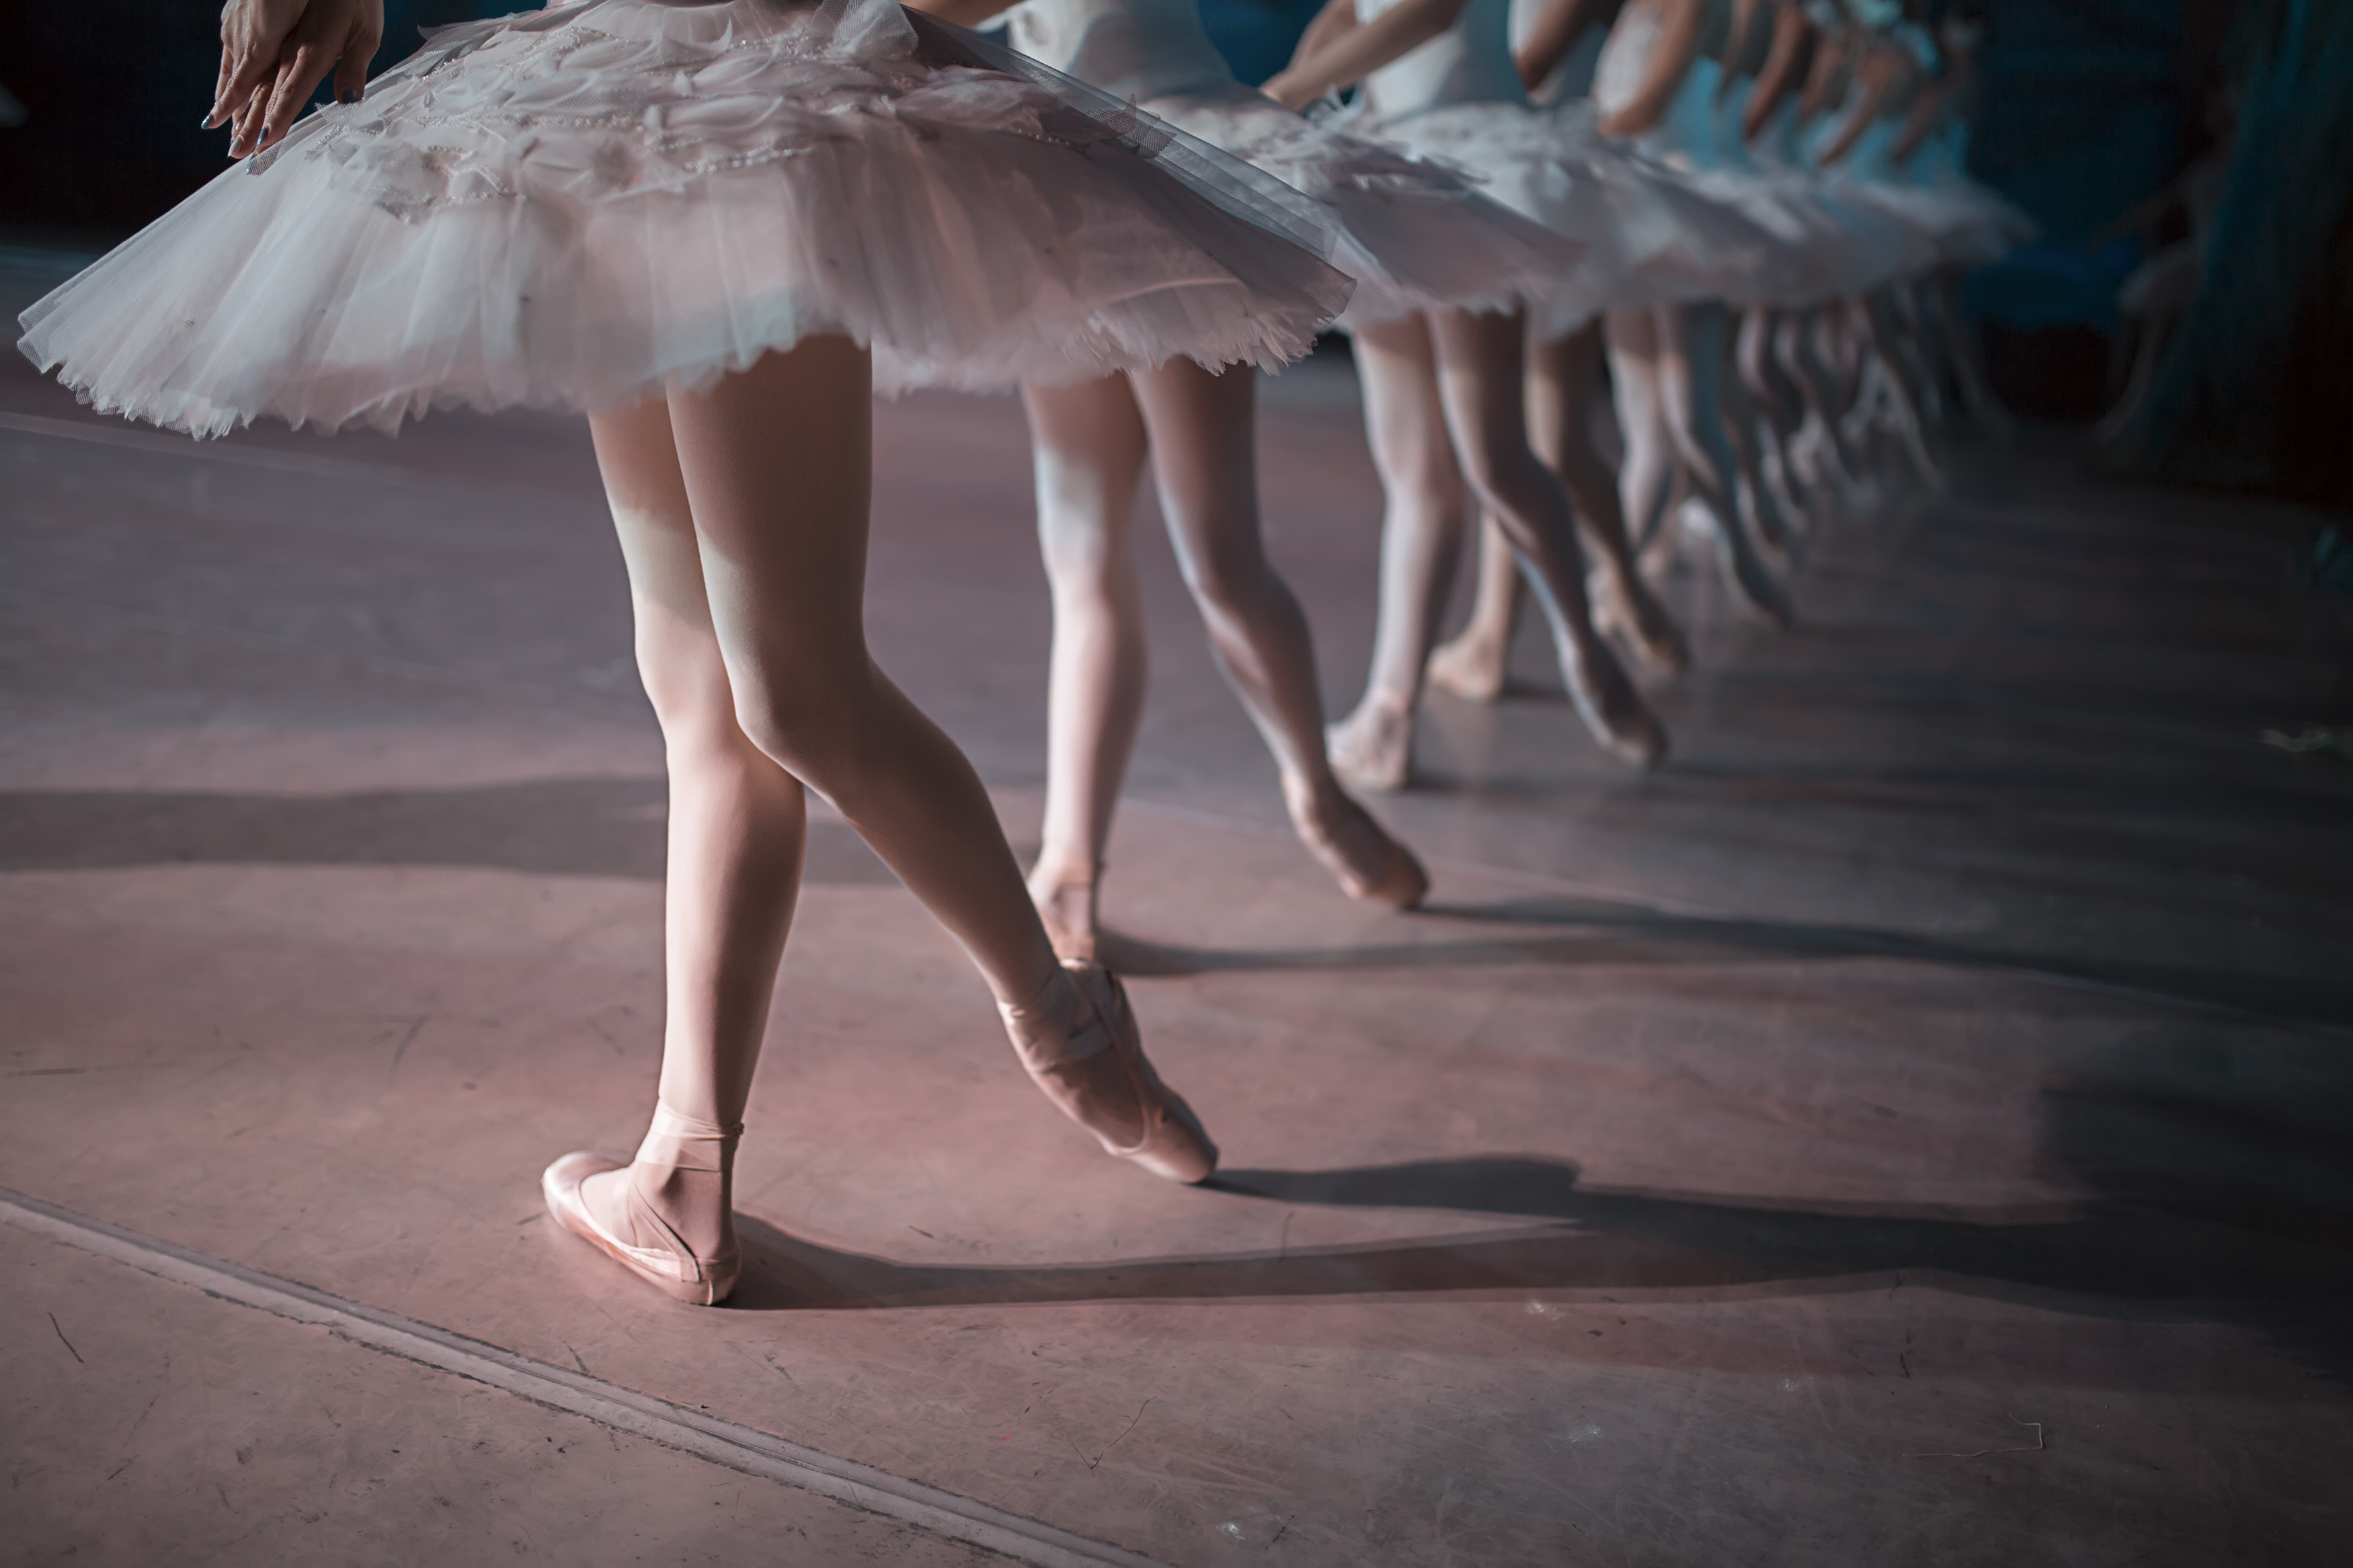 National Ballet School holding auditions in Sudbury this week